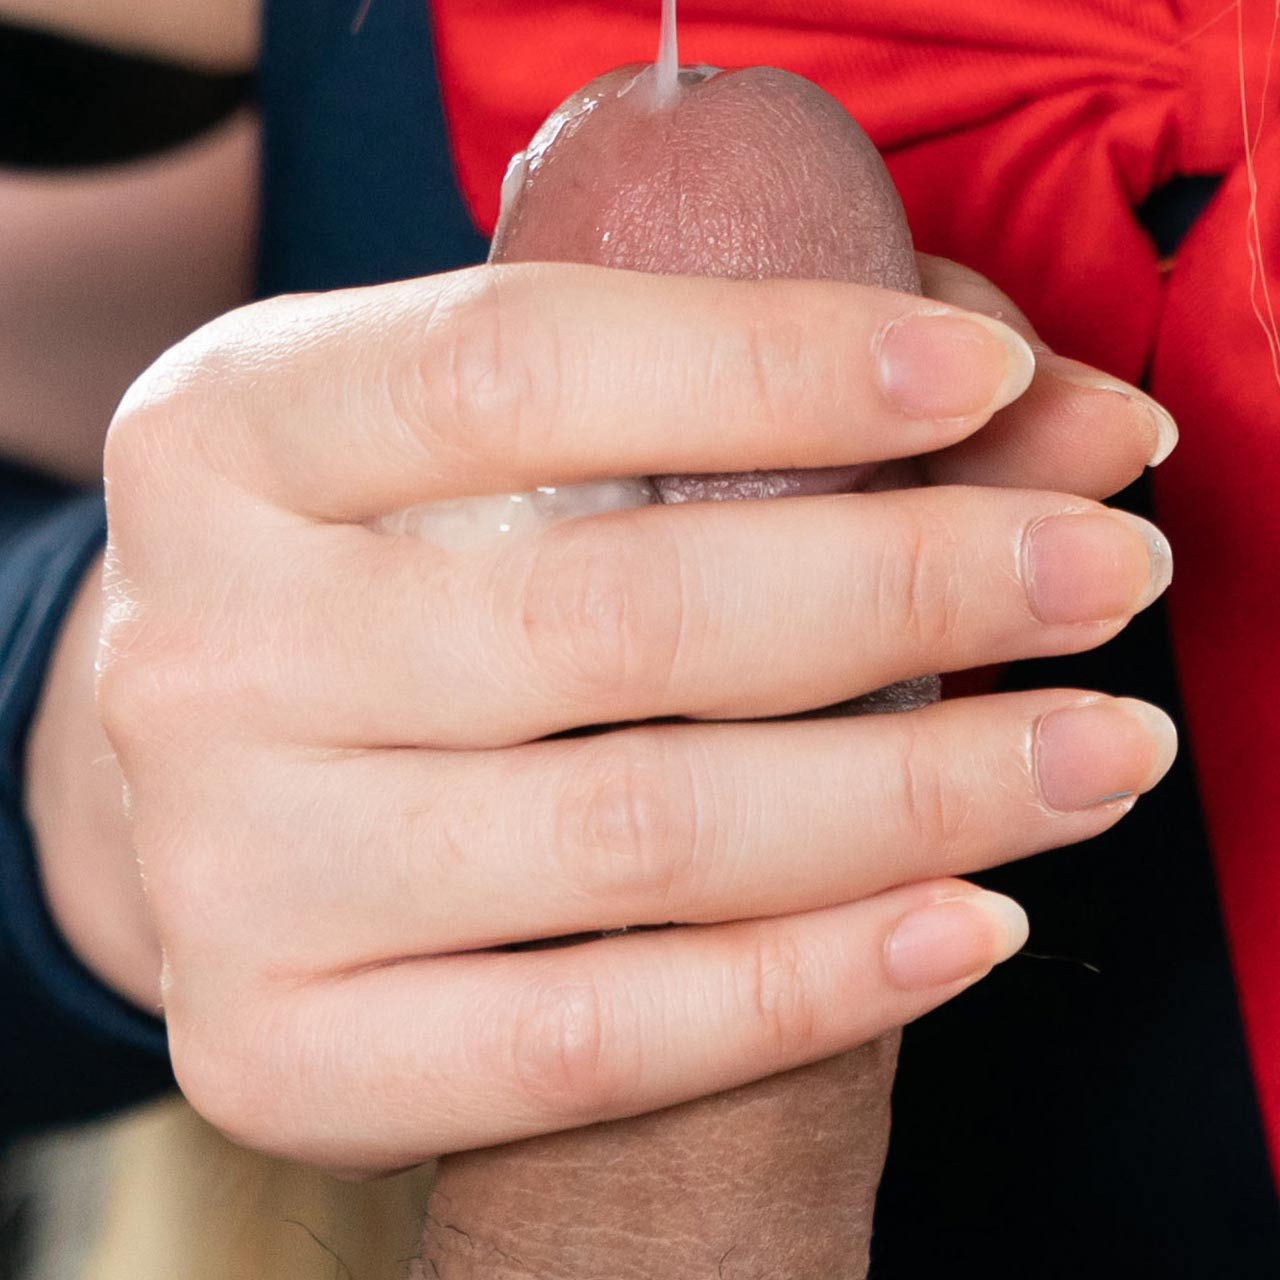 Mary Strokes with Cum. An uncensored Cum Handjob video from SpermMania.